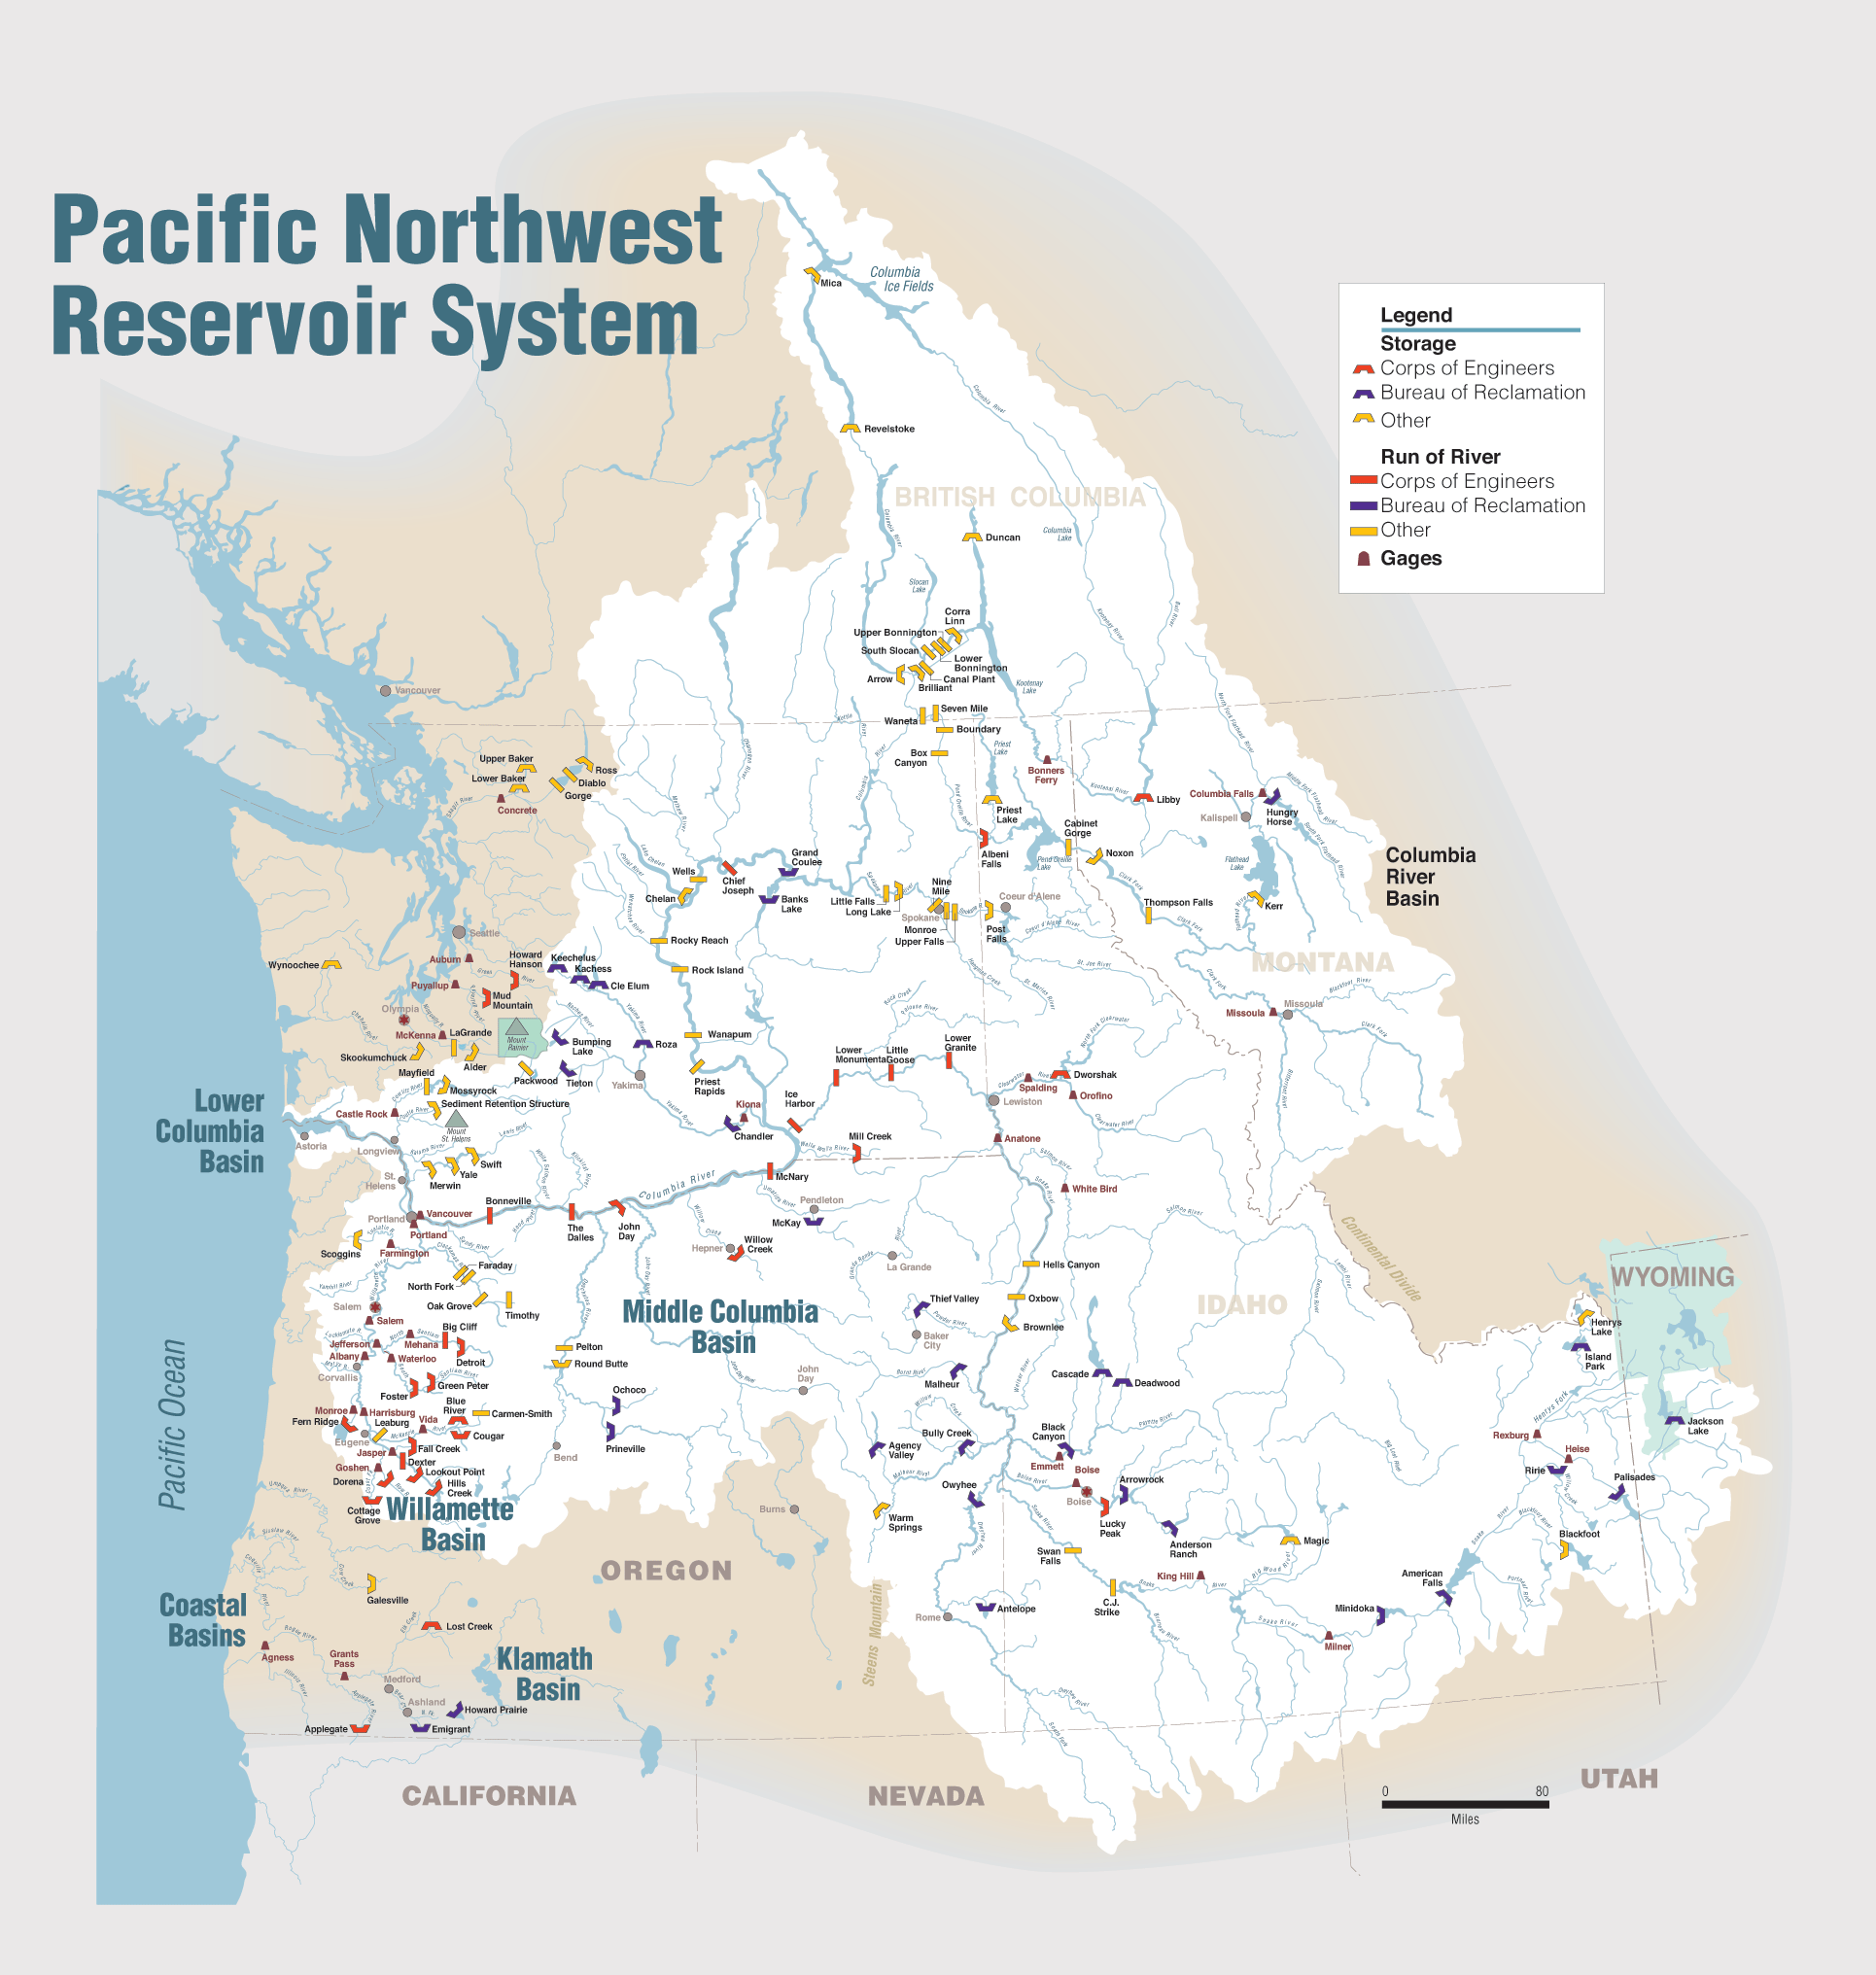 File:Pacific Northwest River System.png - Wikimedia Commons